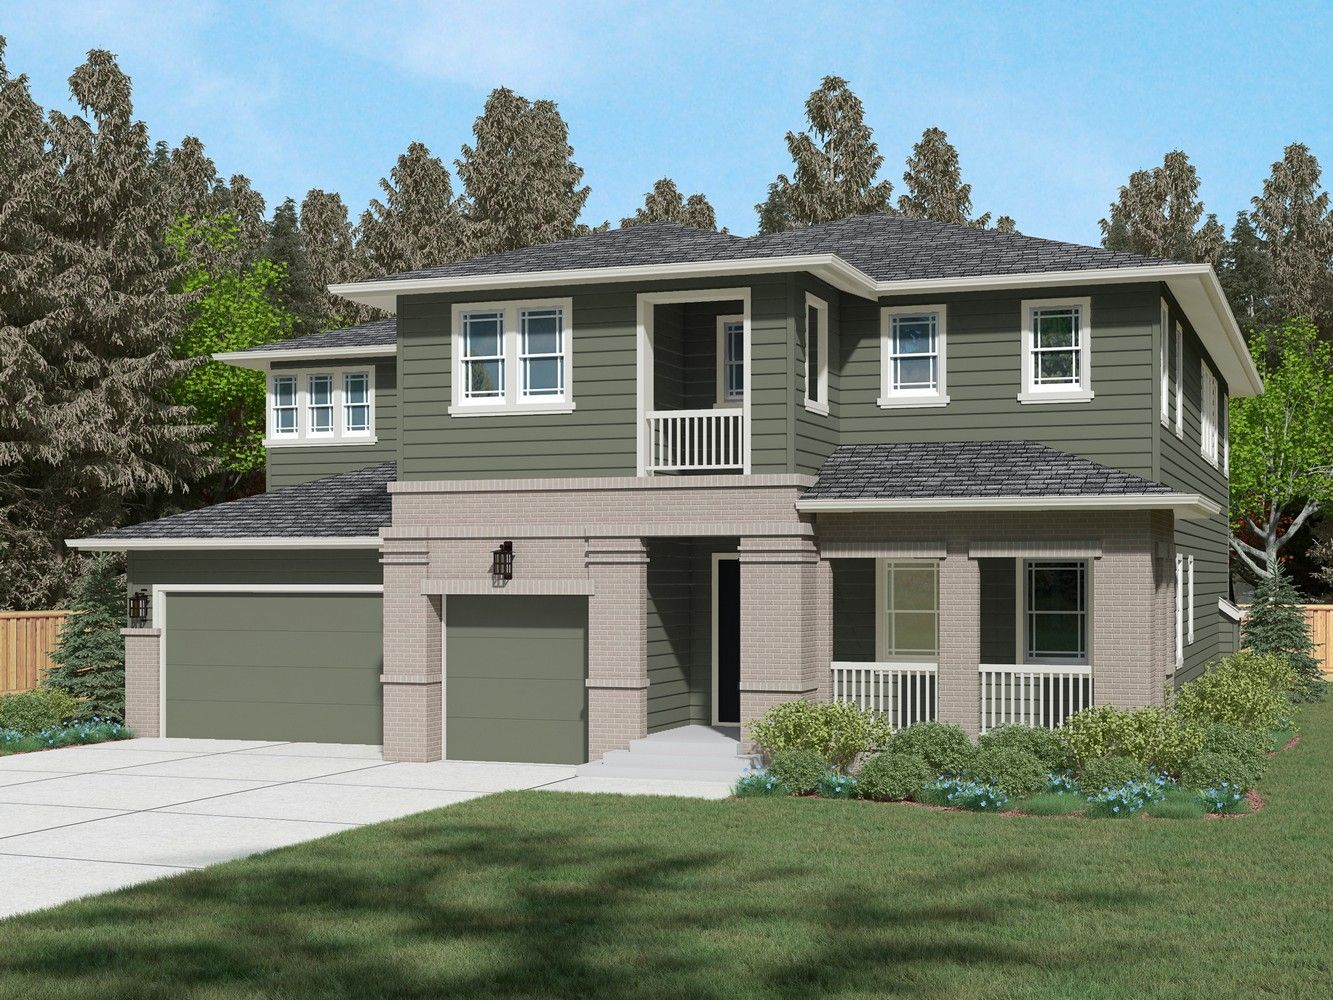 Single Family for Sale at Greenstone Heights - Residence B-440 21809 34th Dr Se Bothell, Washington 98021 United States